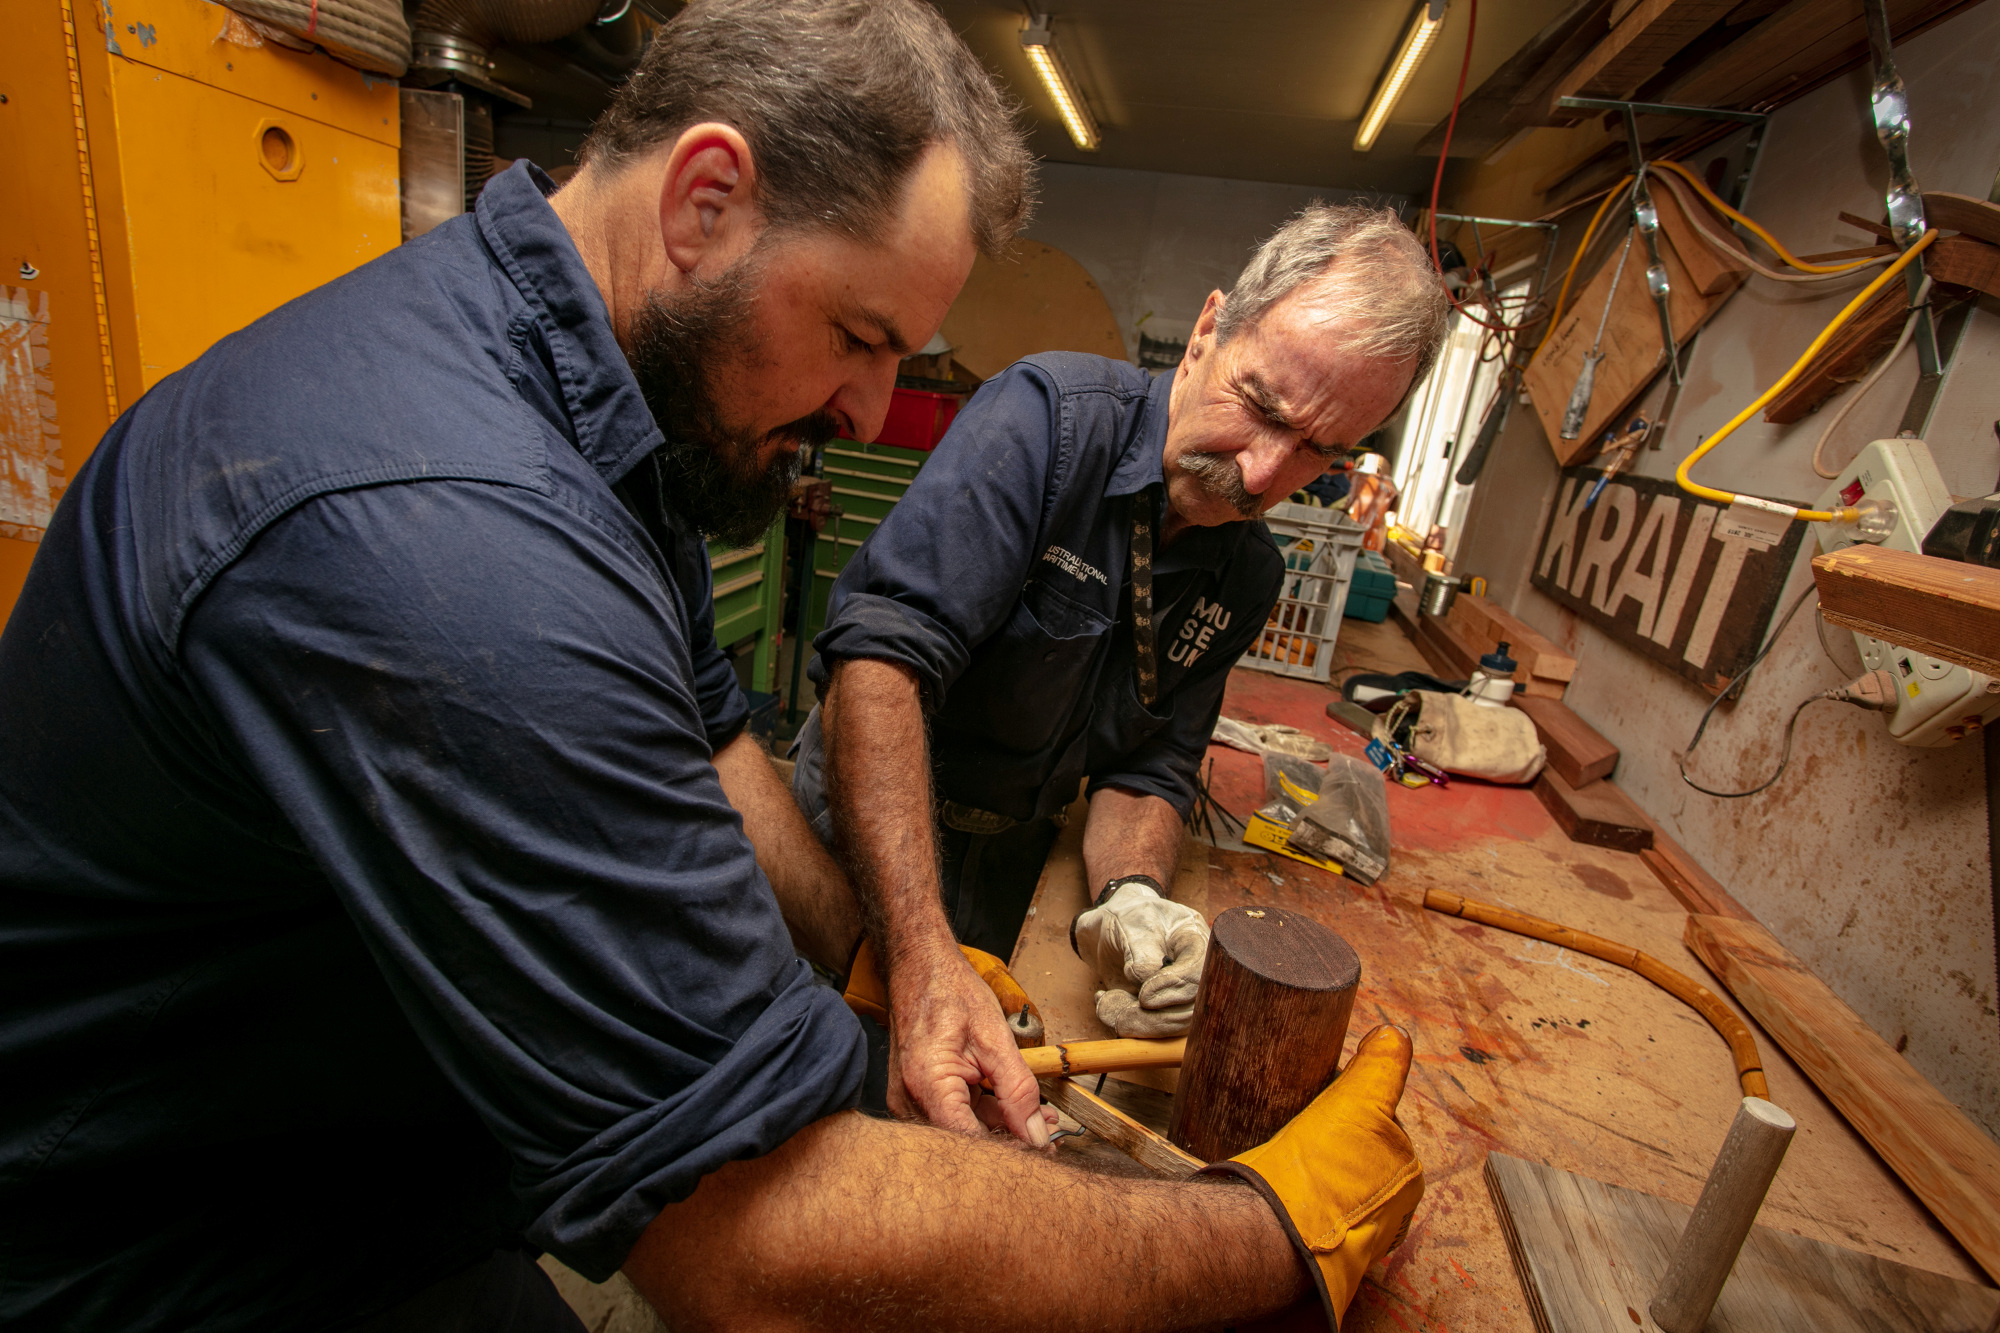 Senior Shipwright Cody Horgan and volunteer Steve fitting timber sections for a small wooden boat, February 2019